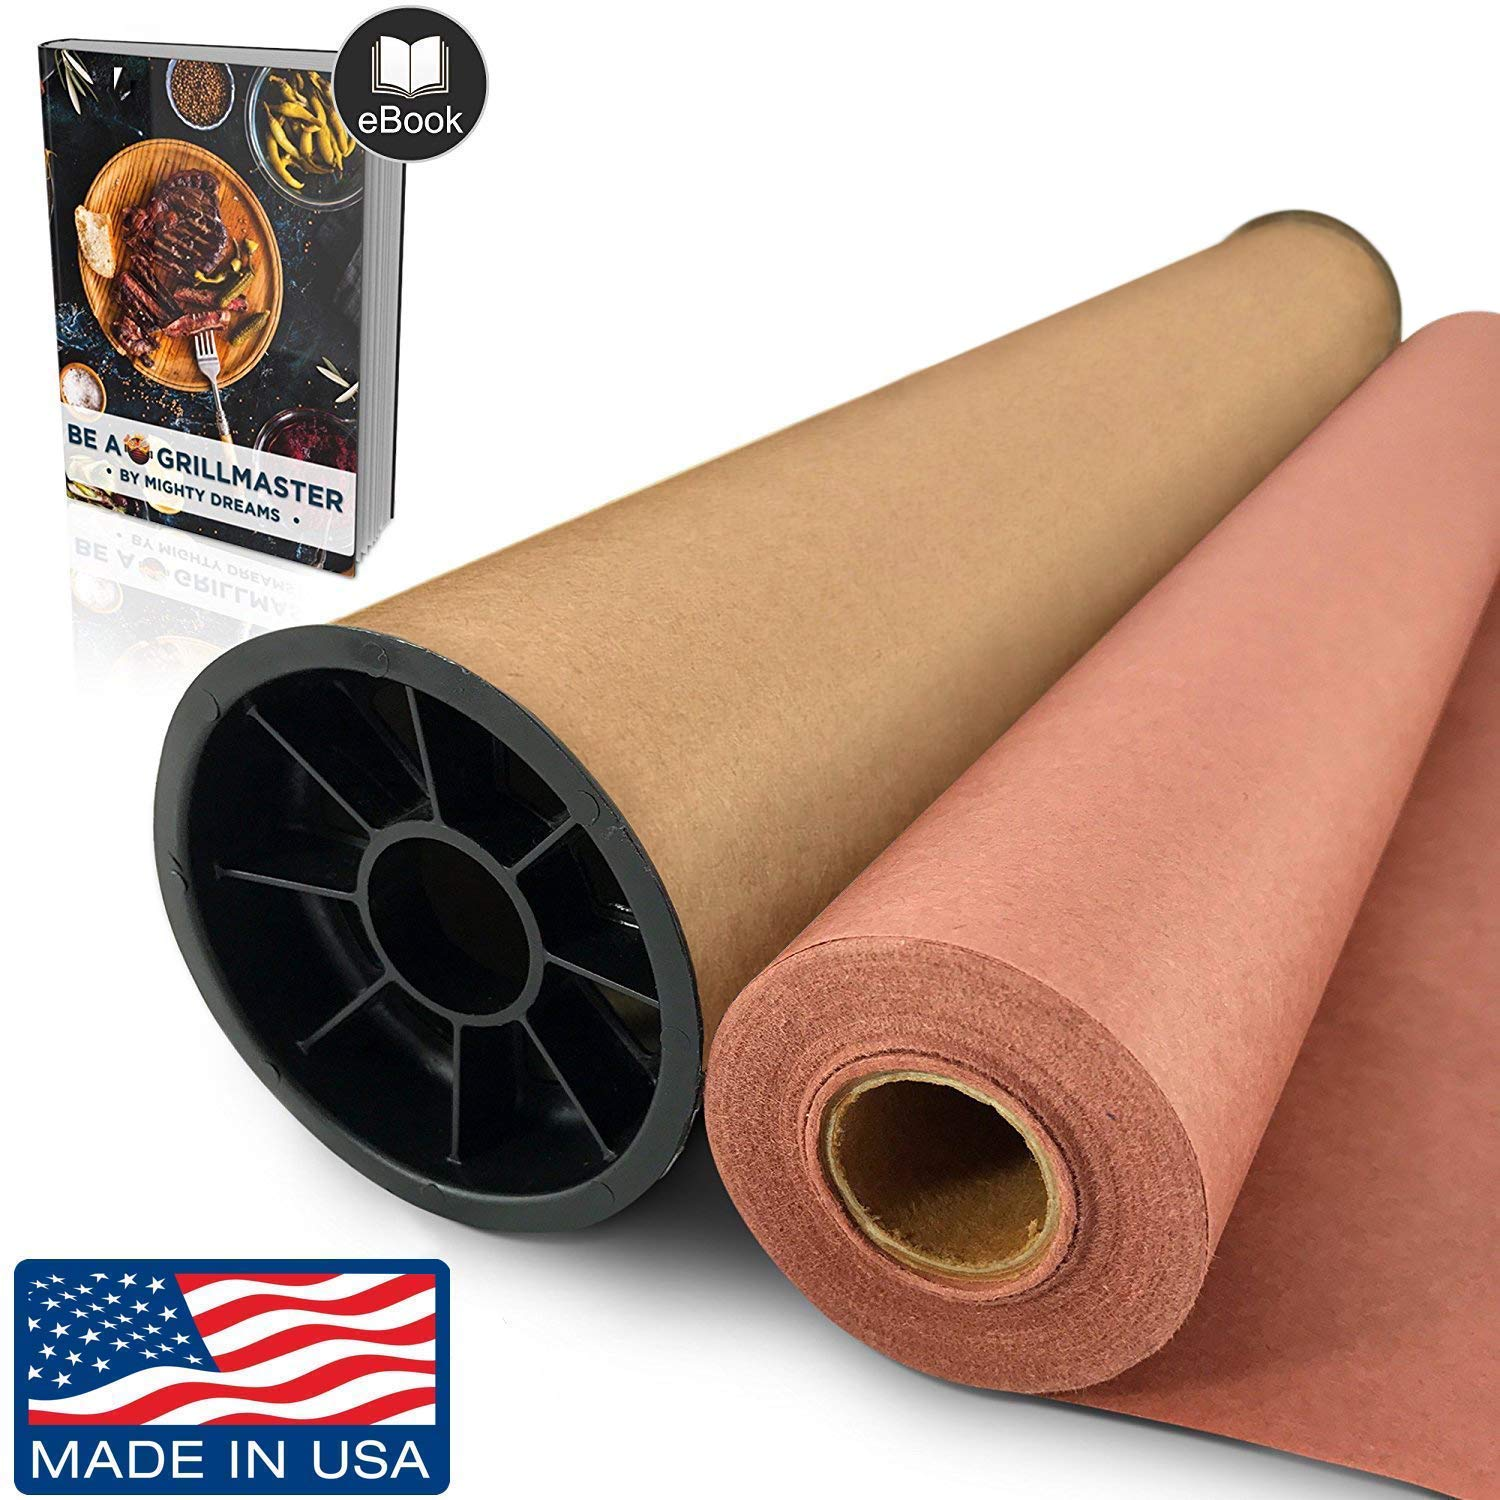 Mighty Dreams Pink/Peach Butcher Paper Roll - (24'' x 150') in Durable Carry Tube & eBook | FDA Food Grade Paper, Made in USA | Unbleached Unwaxed BBQ Smoking & Meat Wrapping Paper